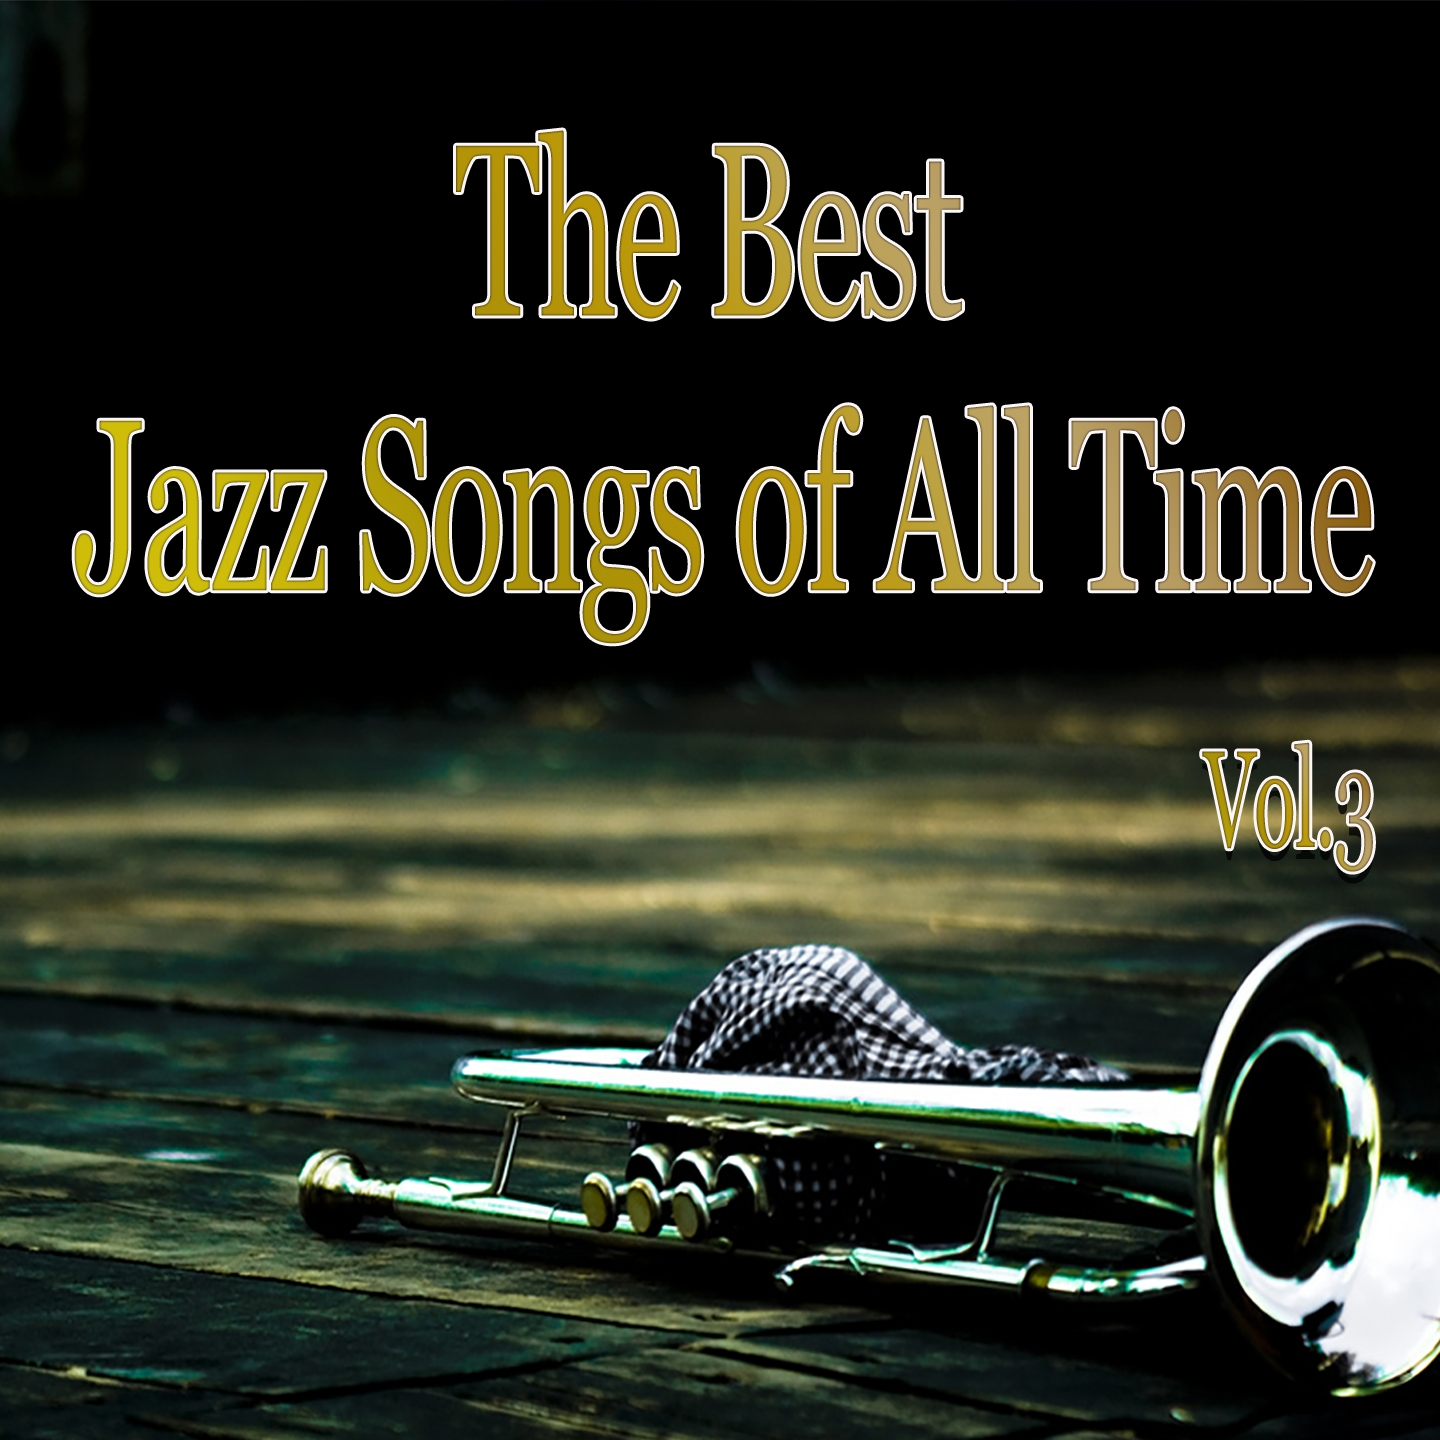 The Best Jazz Songs of All Time, Vol. 3